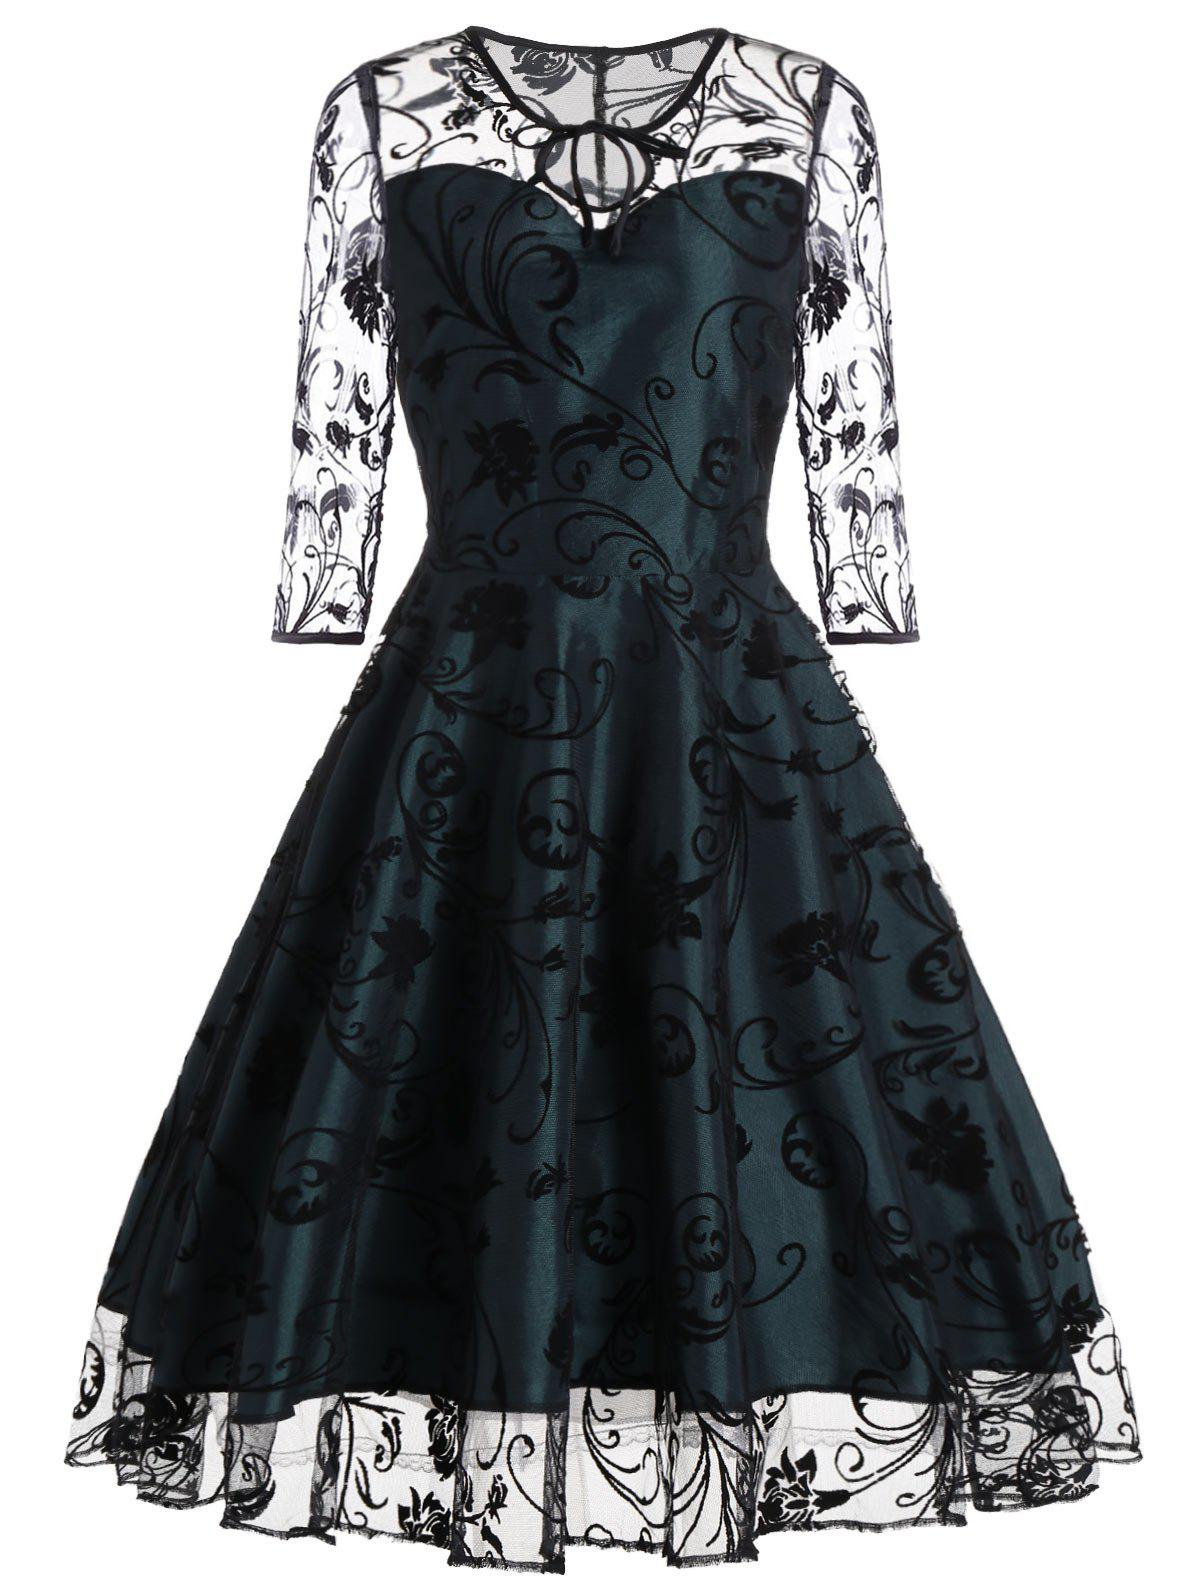 Sheer Sleeve Keyhole Lace Vintage DressWOMEN<br><br>Size: M; Color: BLACKISH GREEN; Style: Vintage; Material: Polyester; Silhouette: A-Line; Dresses Length: Mid-Calf; Neckline: Keyhole Neck; Sleeve Length: 3/4 Length Sleeves; Embellishment: Lace; Pattern Type: Floral; With Belt: No; Season: Fall,Spring,Summer; Weight: 0.3500kg; Package Contents: 1 x Dress;